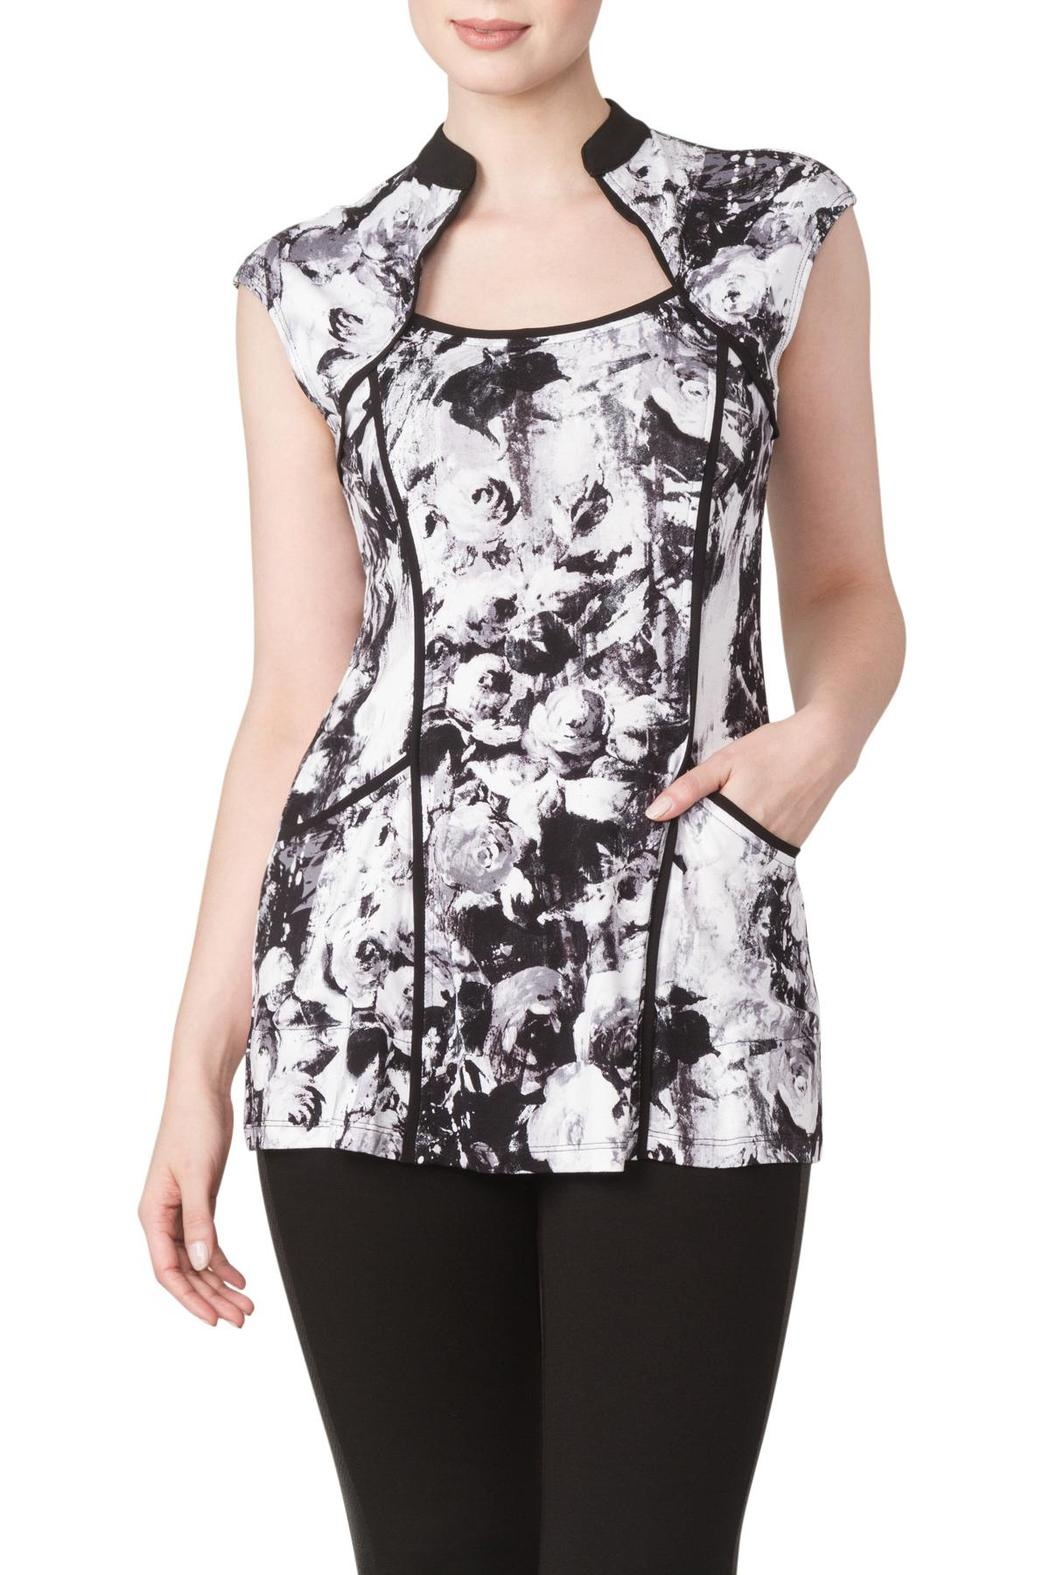 Yvonne Marie Andrea Tunic Top - Main Image